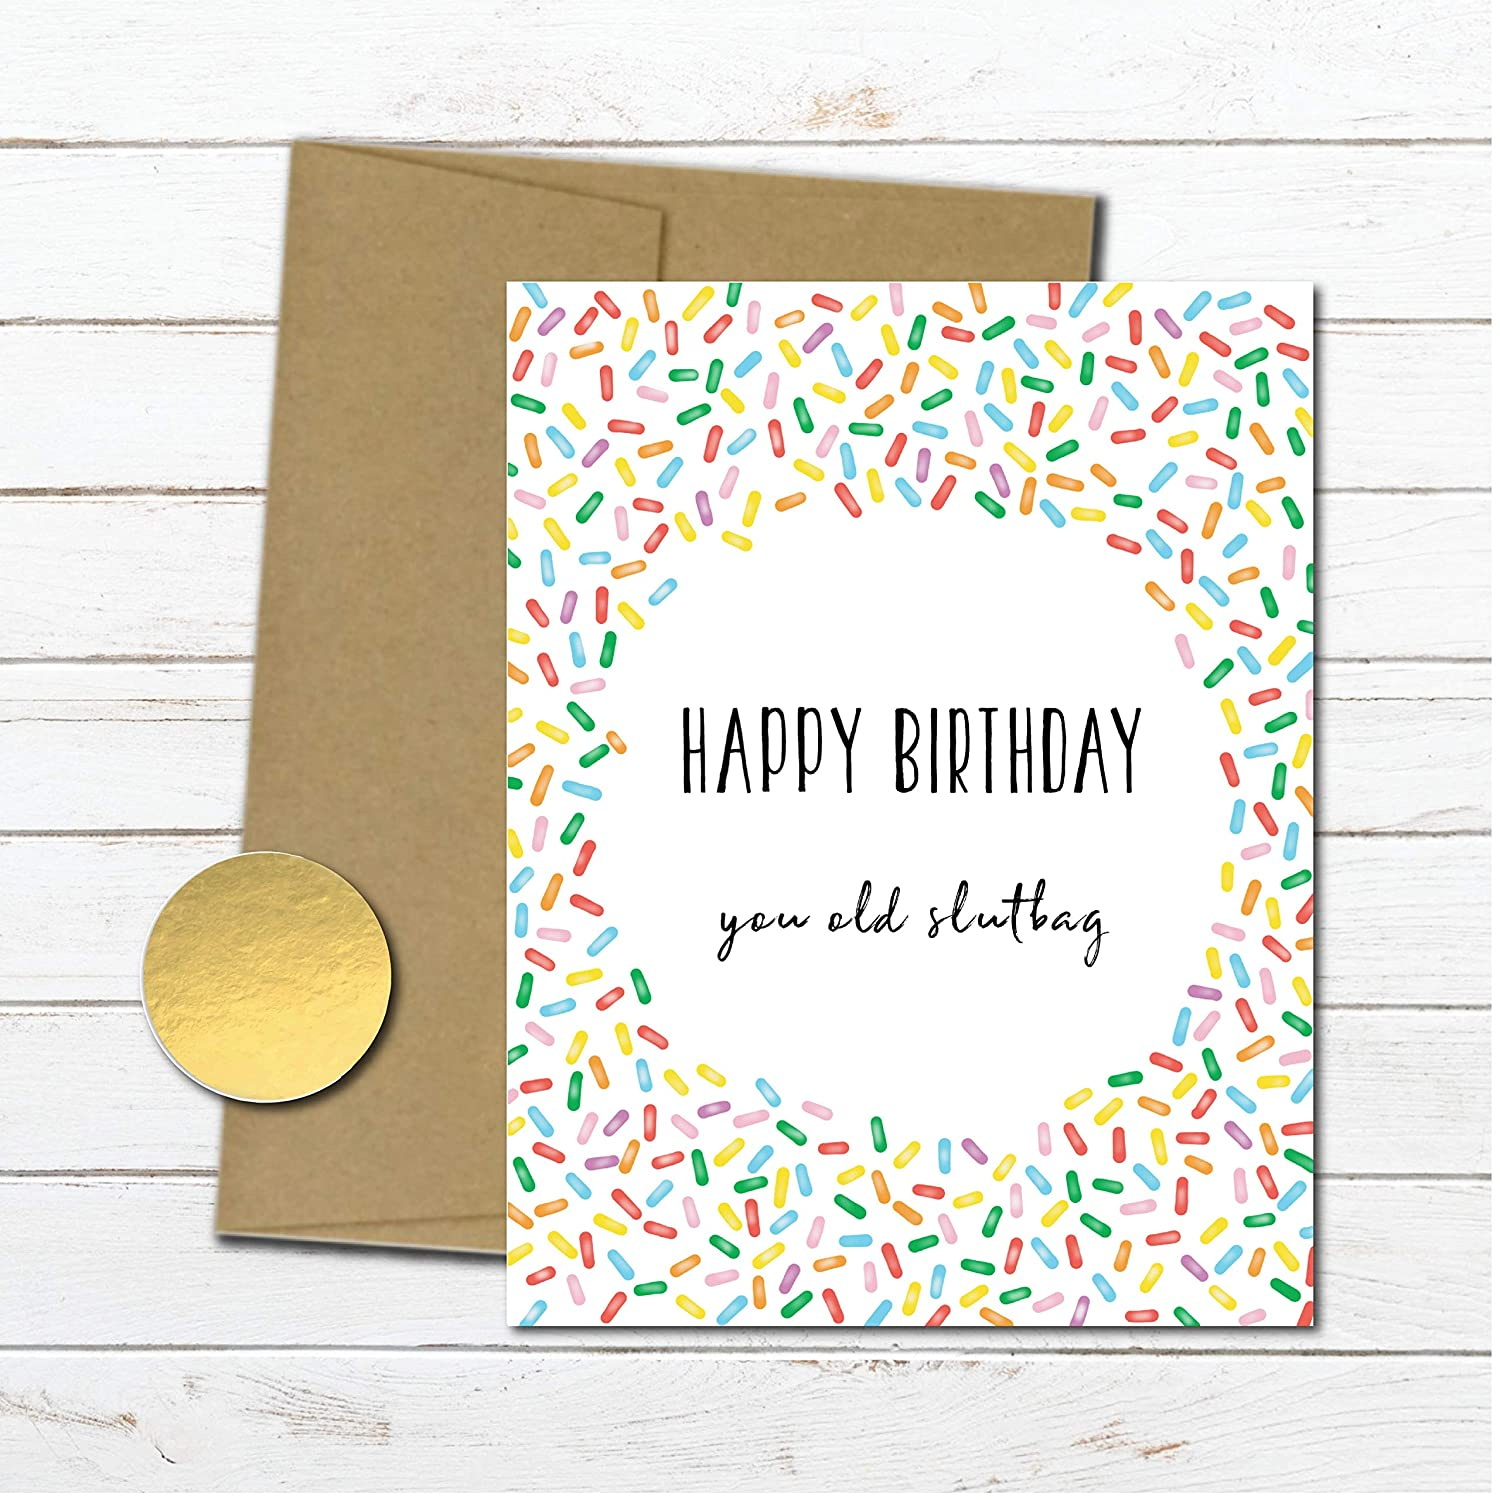 Amazon Rude Funny Birthday Card For Her Naughty Friend Mom Wife Gifts Sister Inappropriate Old Slutbag